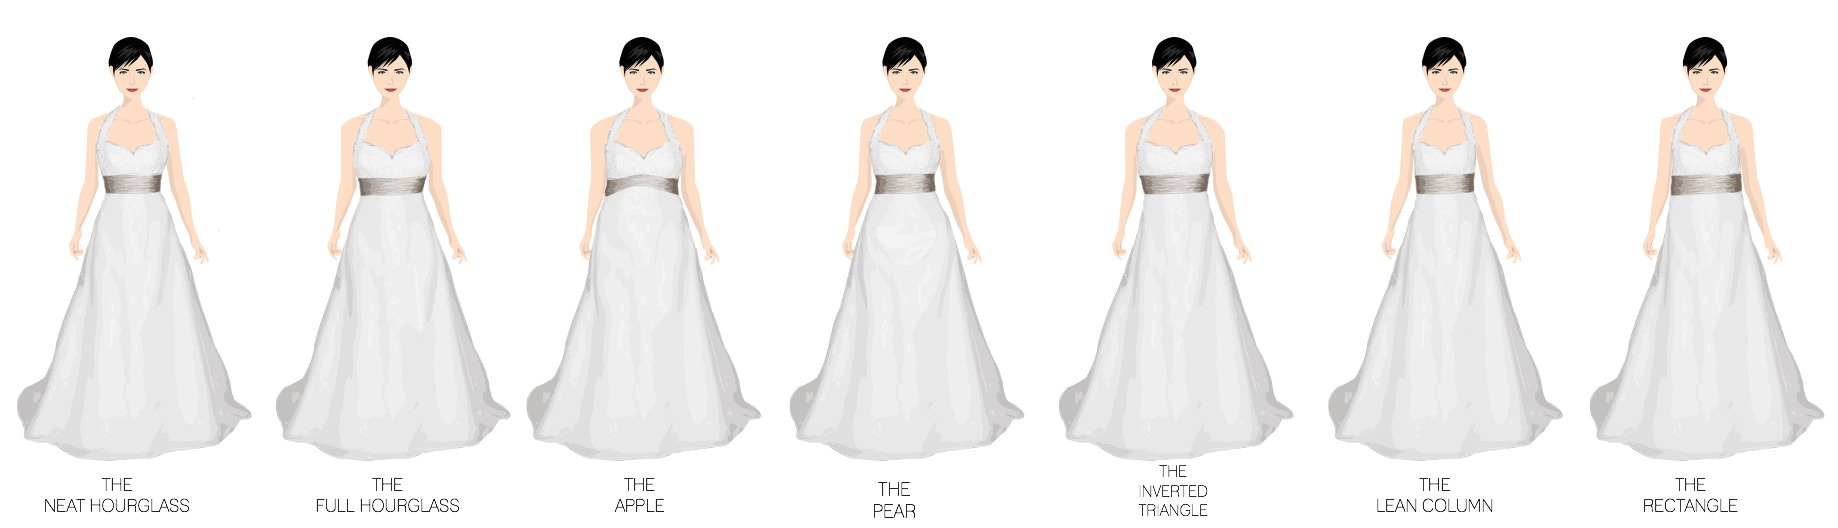 Wedding Gown Styles For Body Shapes